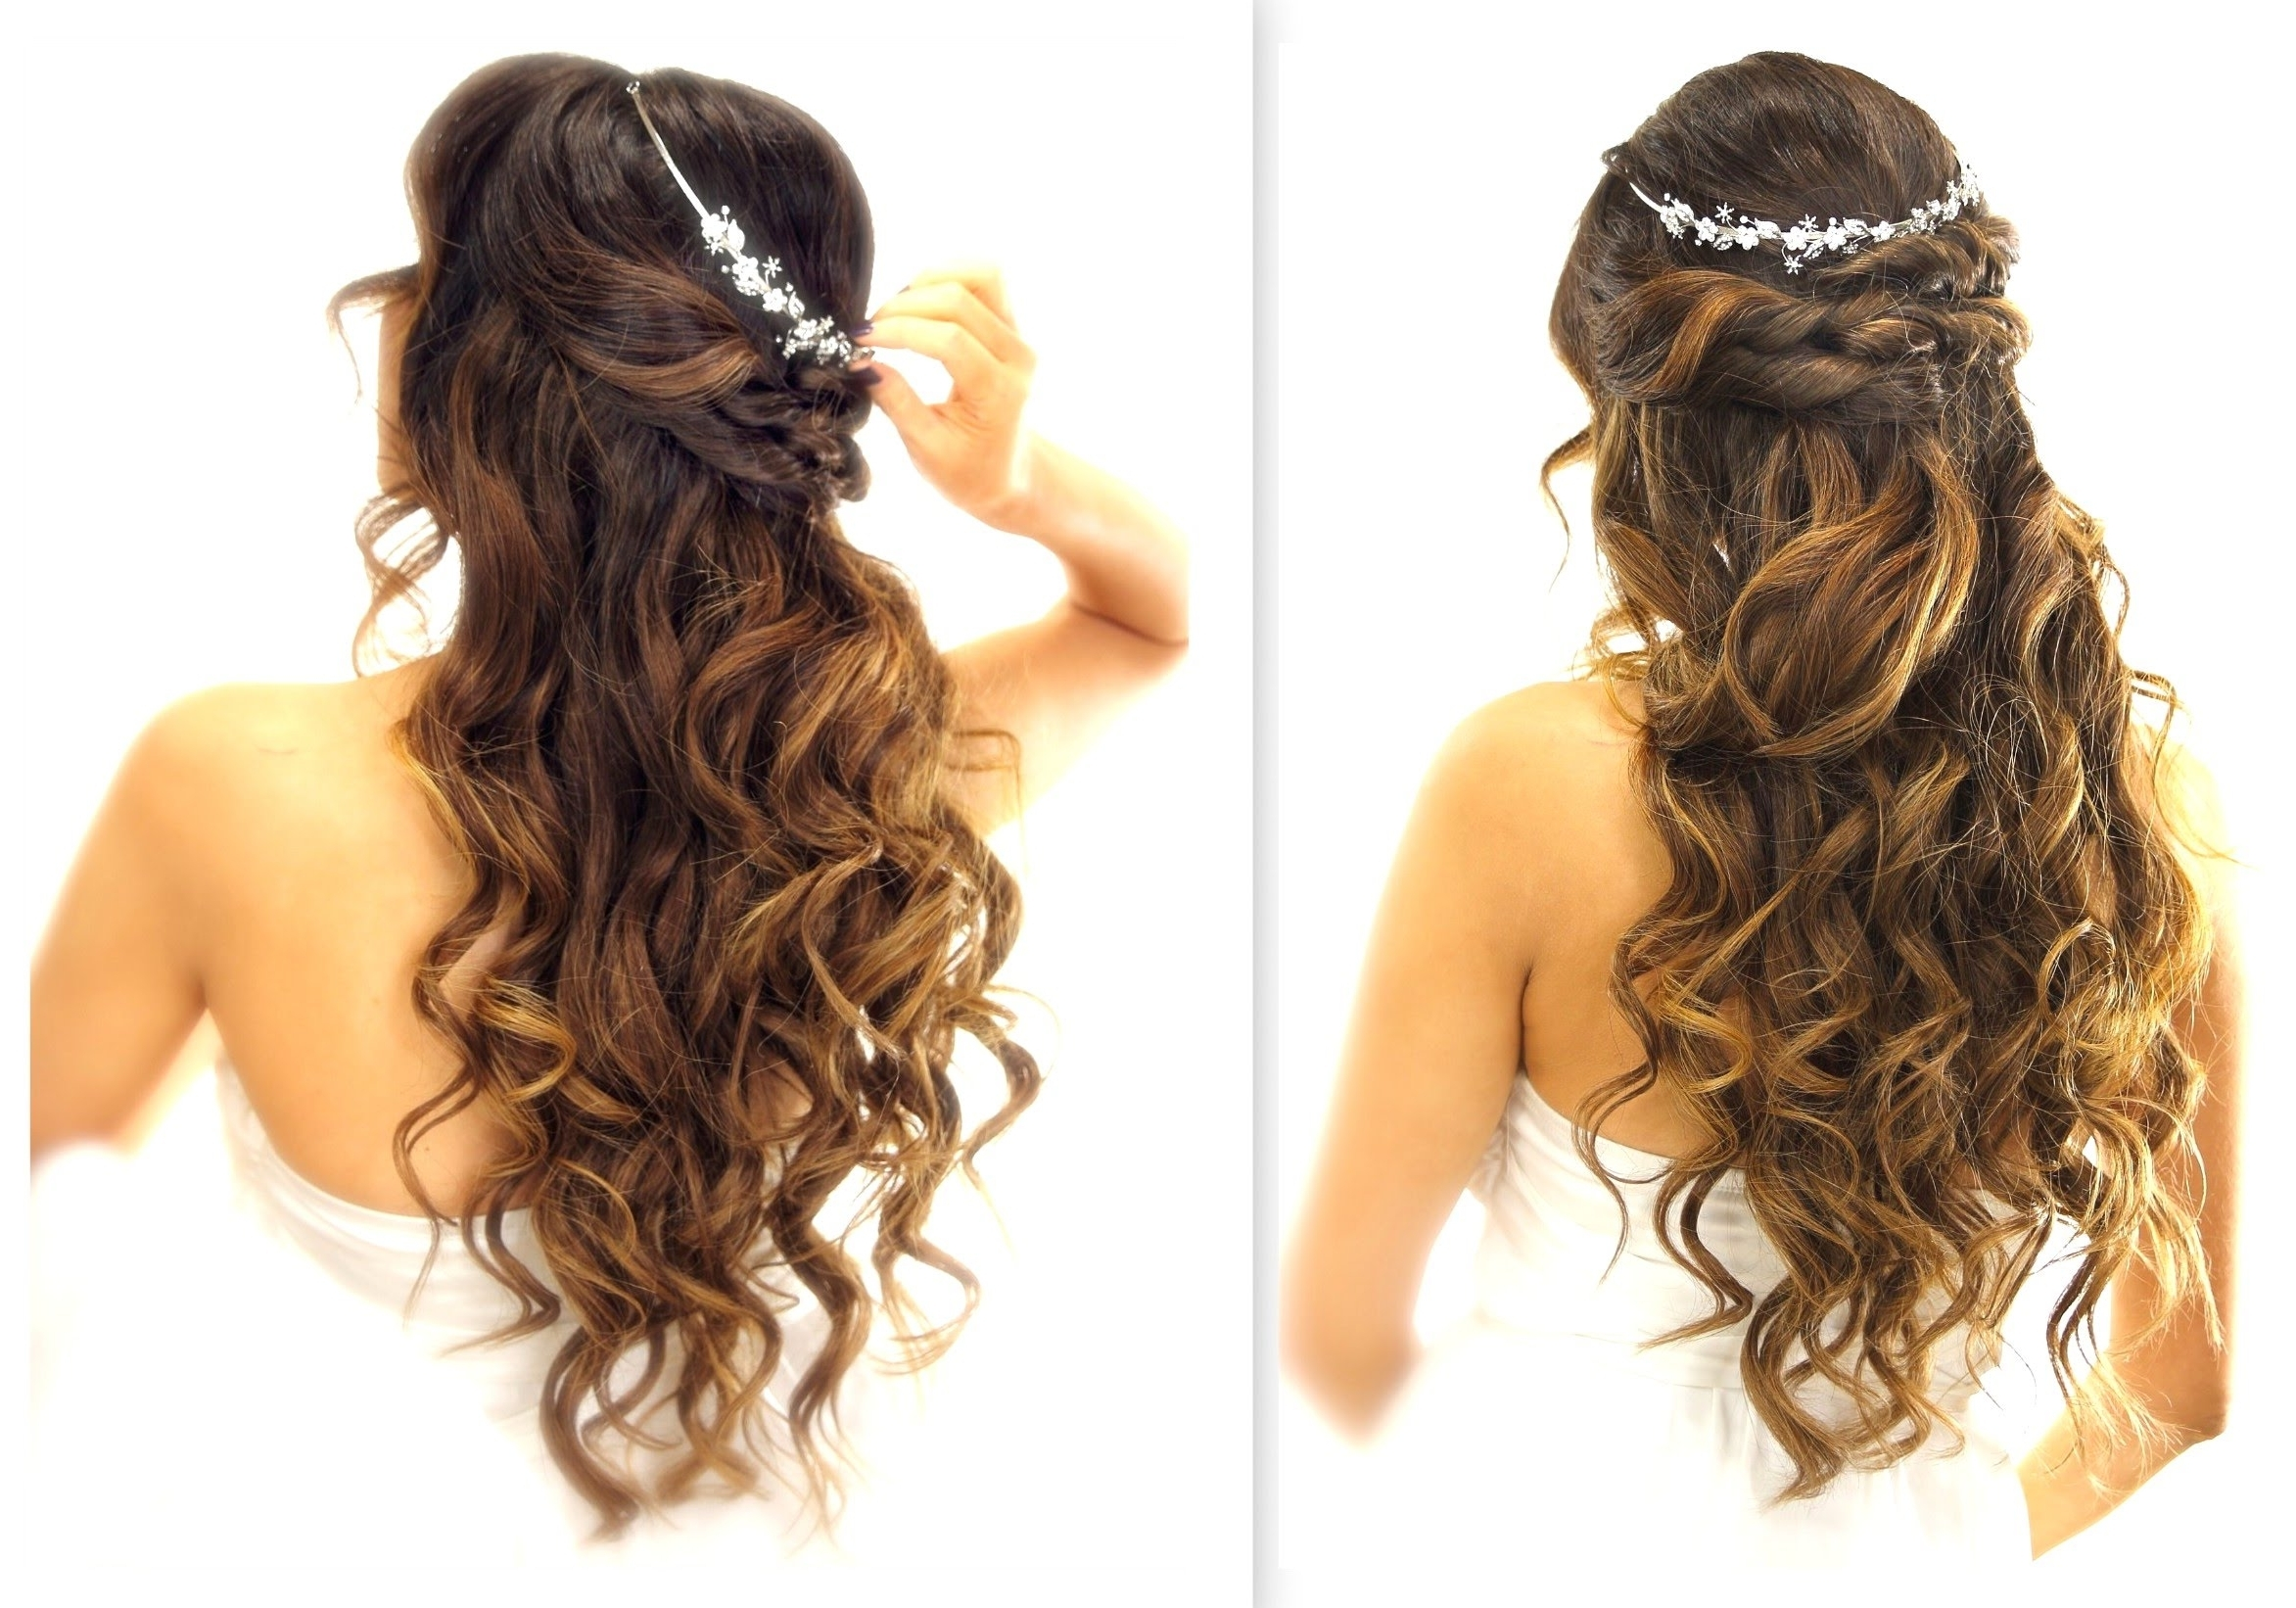 Bridal Hairstyles With Regard To Well Known Easy Wedding Hairstyles For Bridesmaids (View 3 of 15)